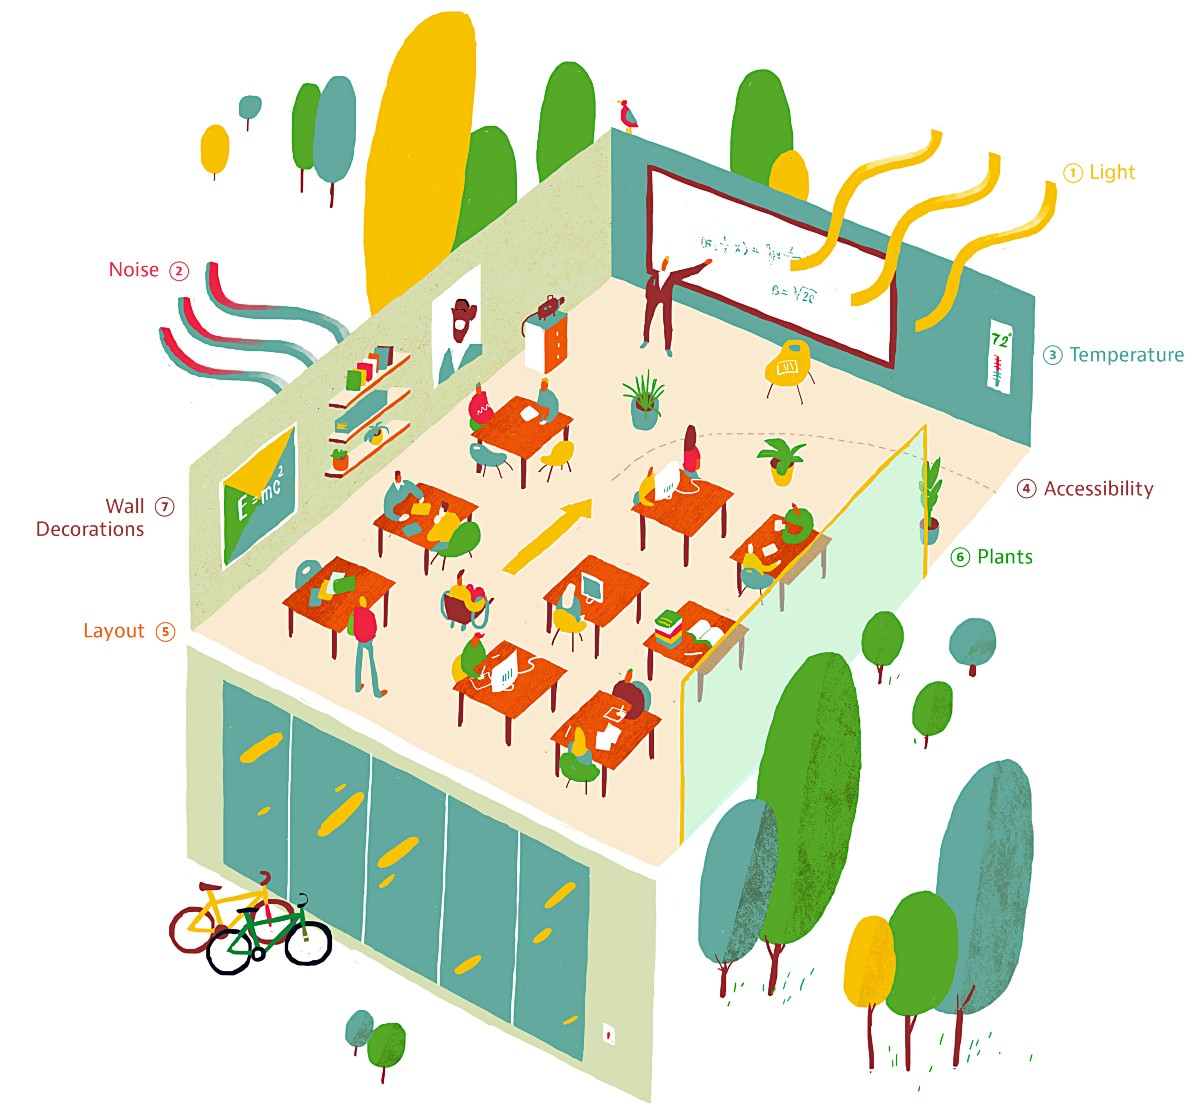 Classroom Design For Learning Disabilities ~ The perfect classroom according to science — bright medium